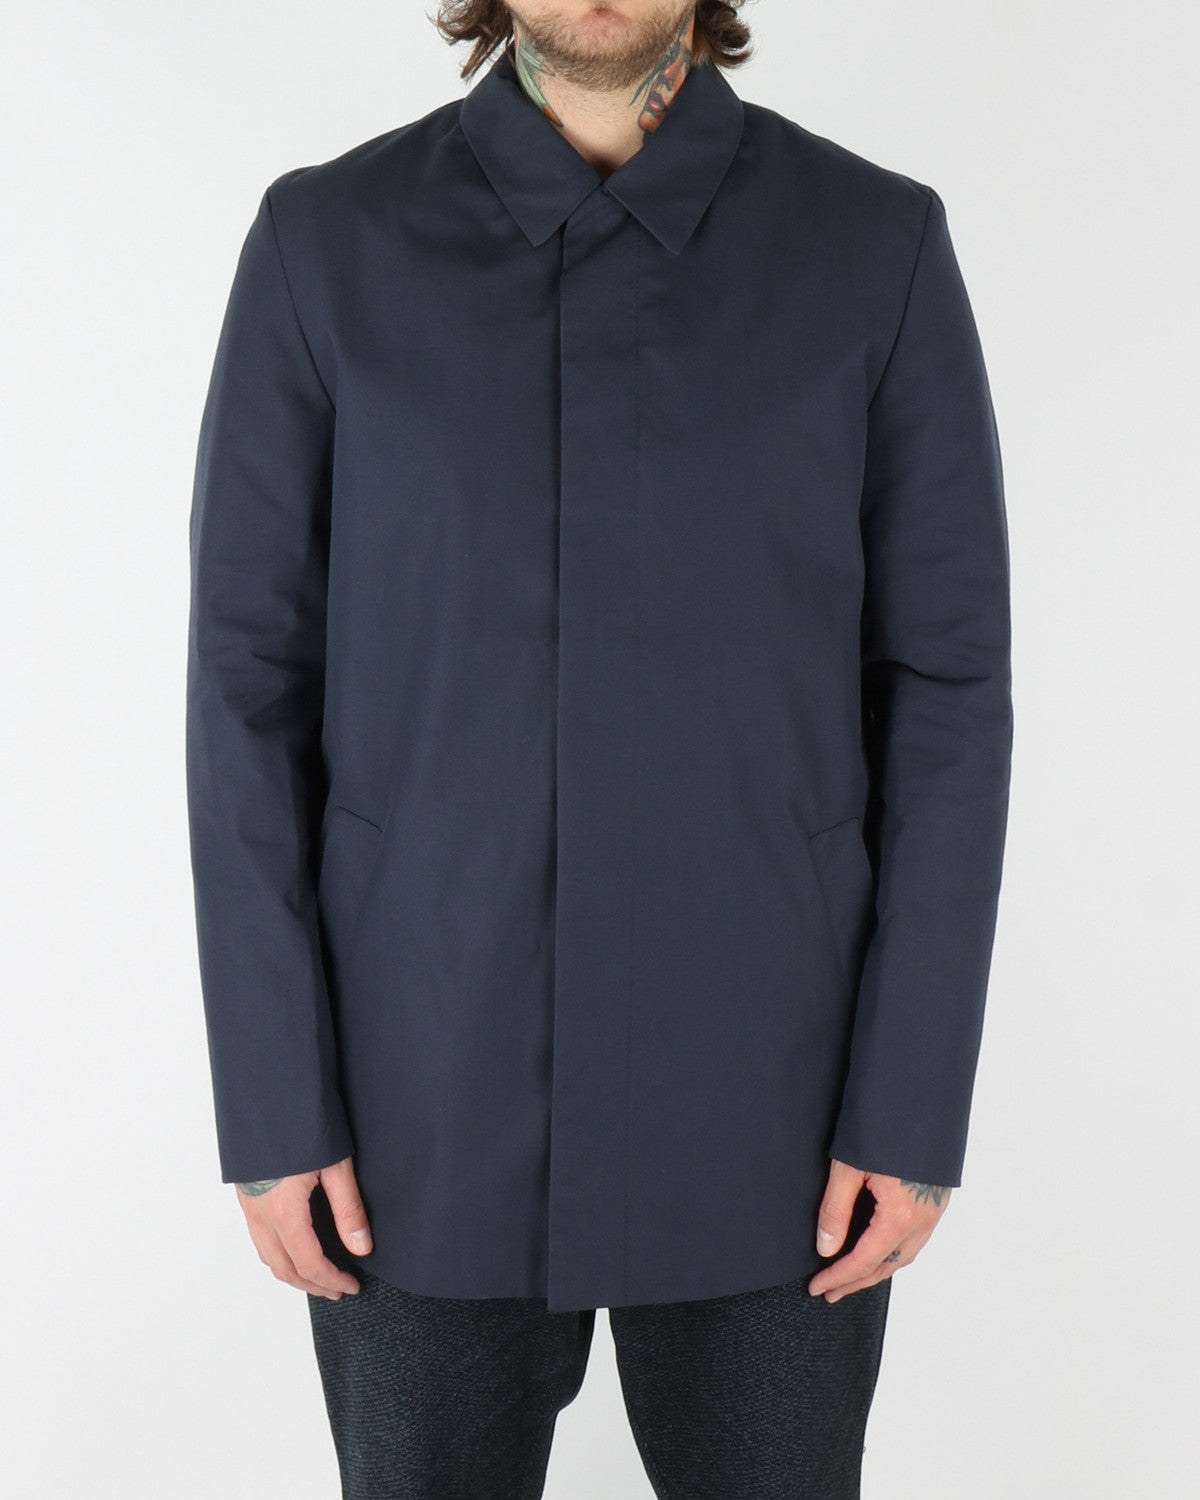 journal clothing_lost tech coat_navy_view_2_3